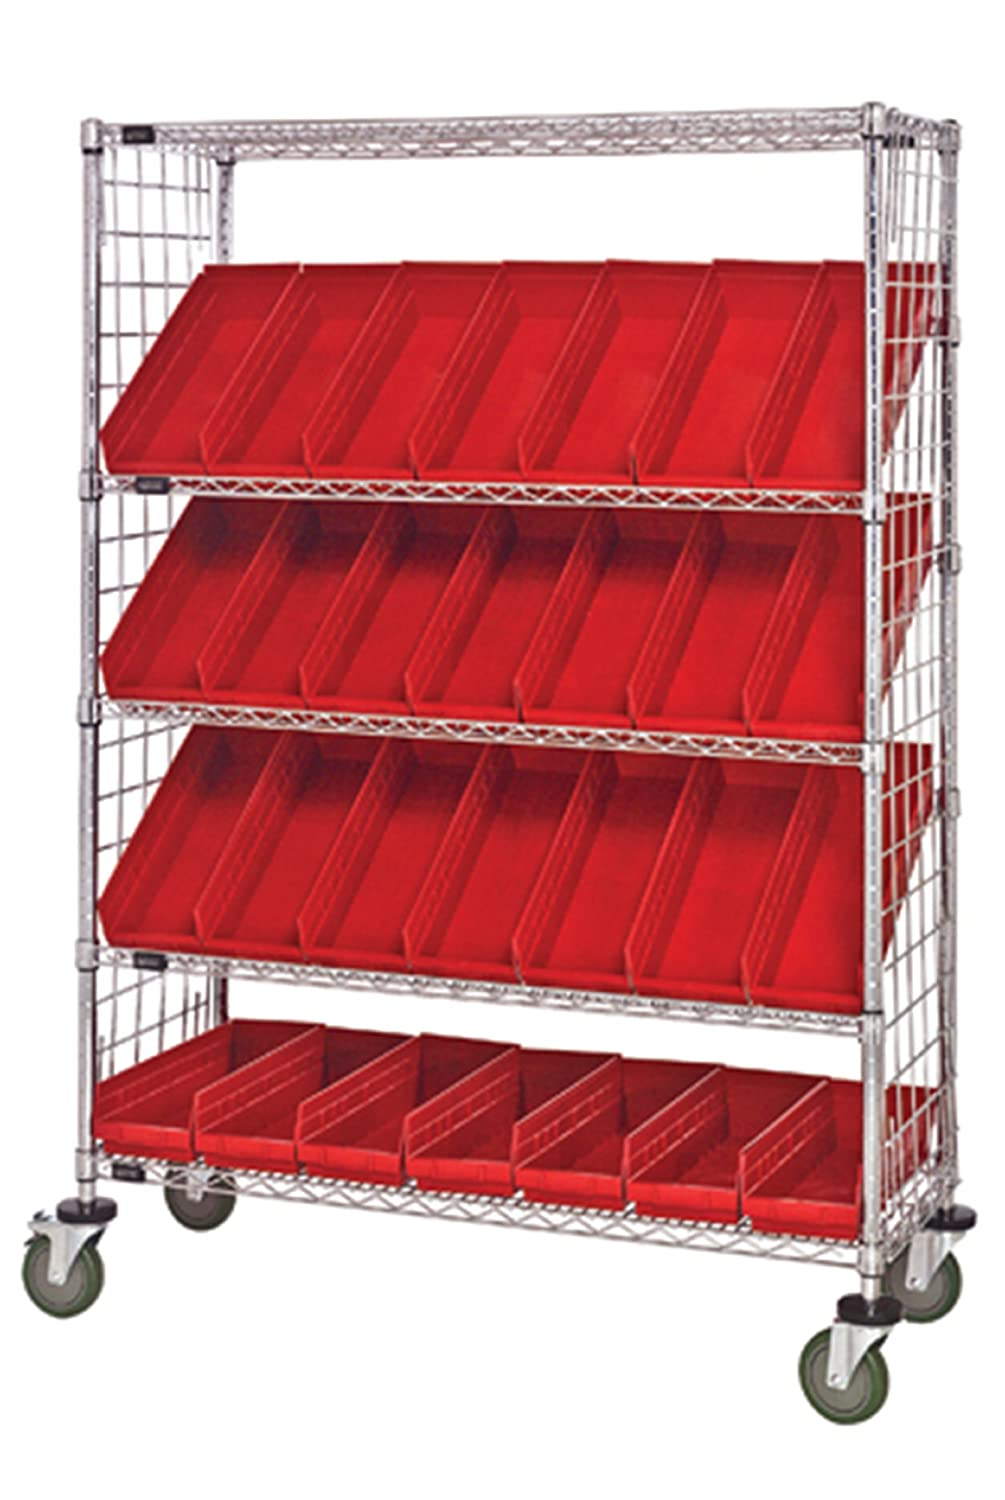 """B008I8AFXI Quantum Storage Systems WRCSL5-63-1848EP-104RD 5-Tier Slanted Wire Shelving Suture Cart with 28 QSB104 Red Economy Shelf Bins, Enclosed, 2 Horizontal and 3 Slanted Shelves, Chrome Finish, 69"""" Height x 48"""" Width x 18"""" Depth 81vEz5vSZiL._SL1500_."""